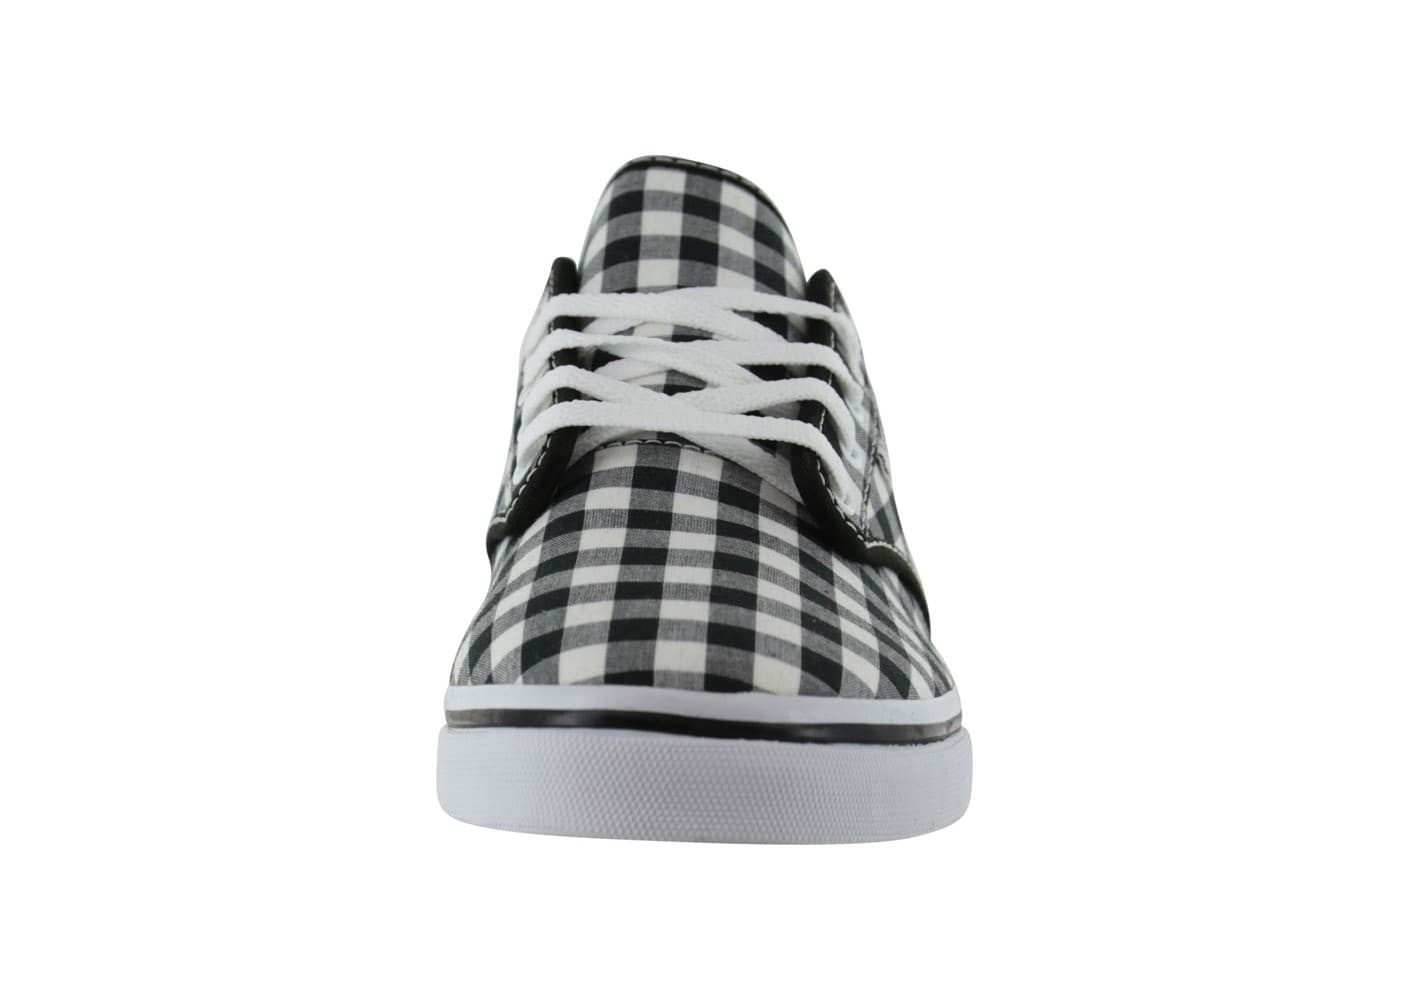 Noire Chausport Chaussures Vichy Vans Atwood 7y6bfg